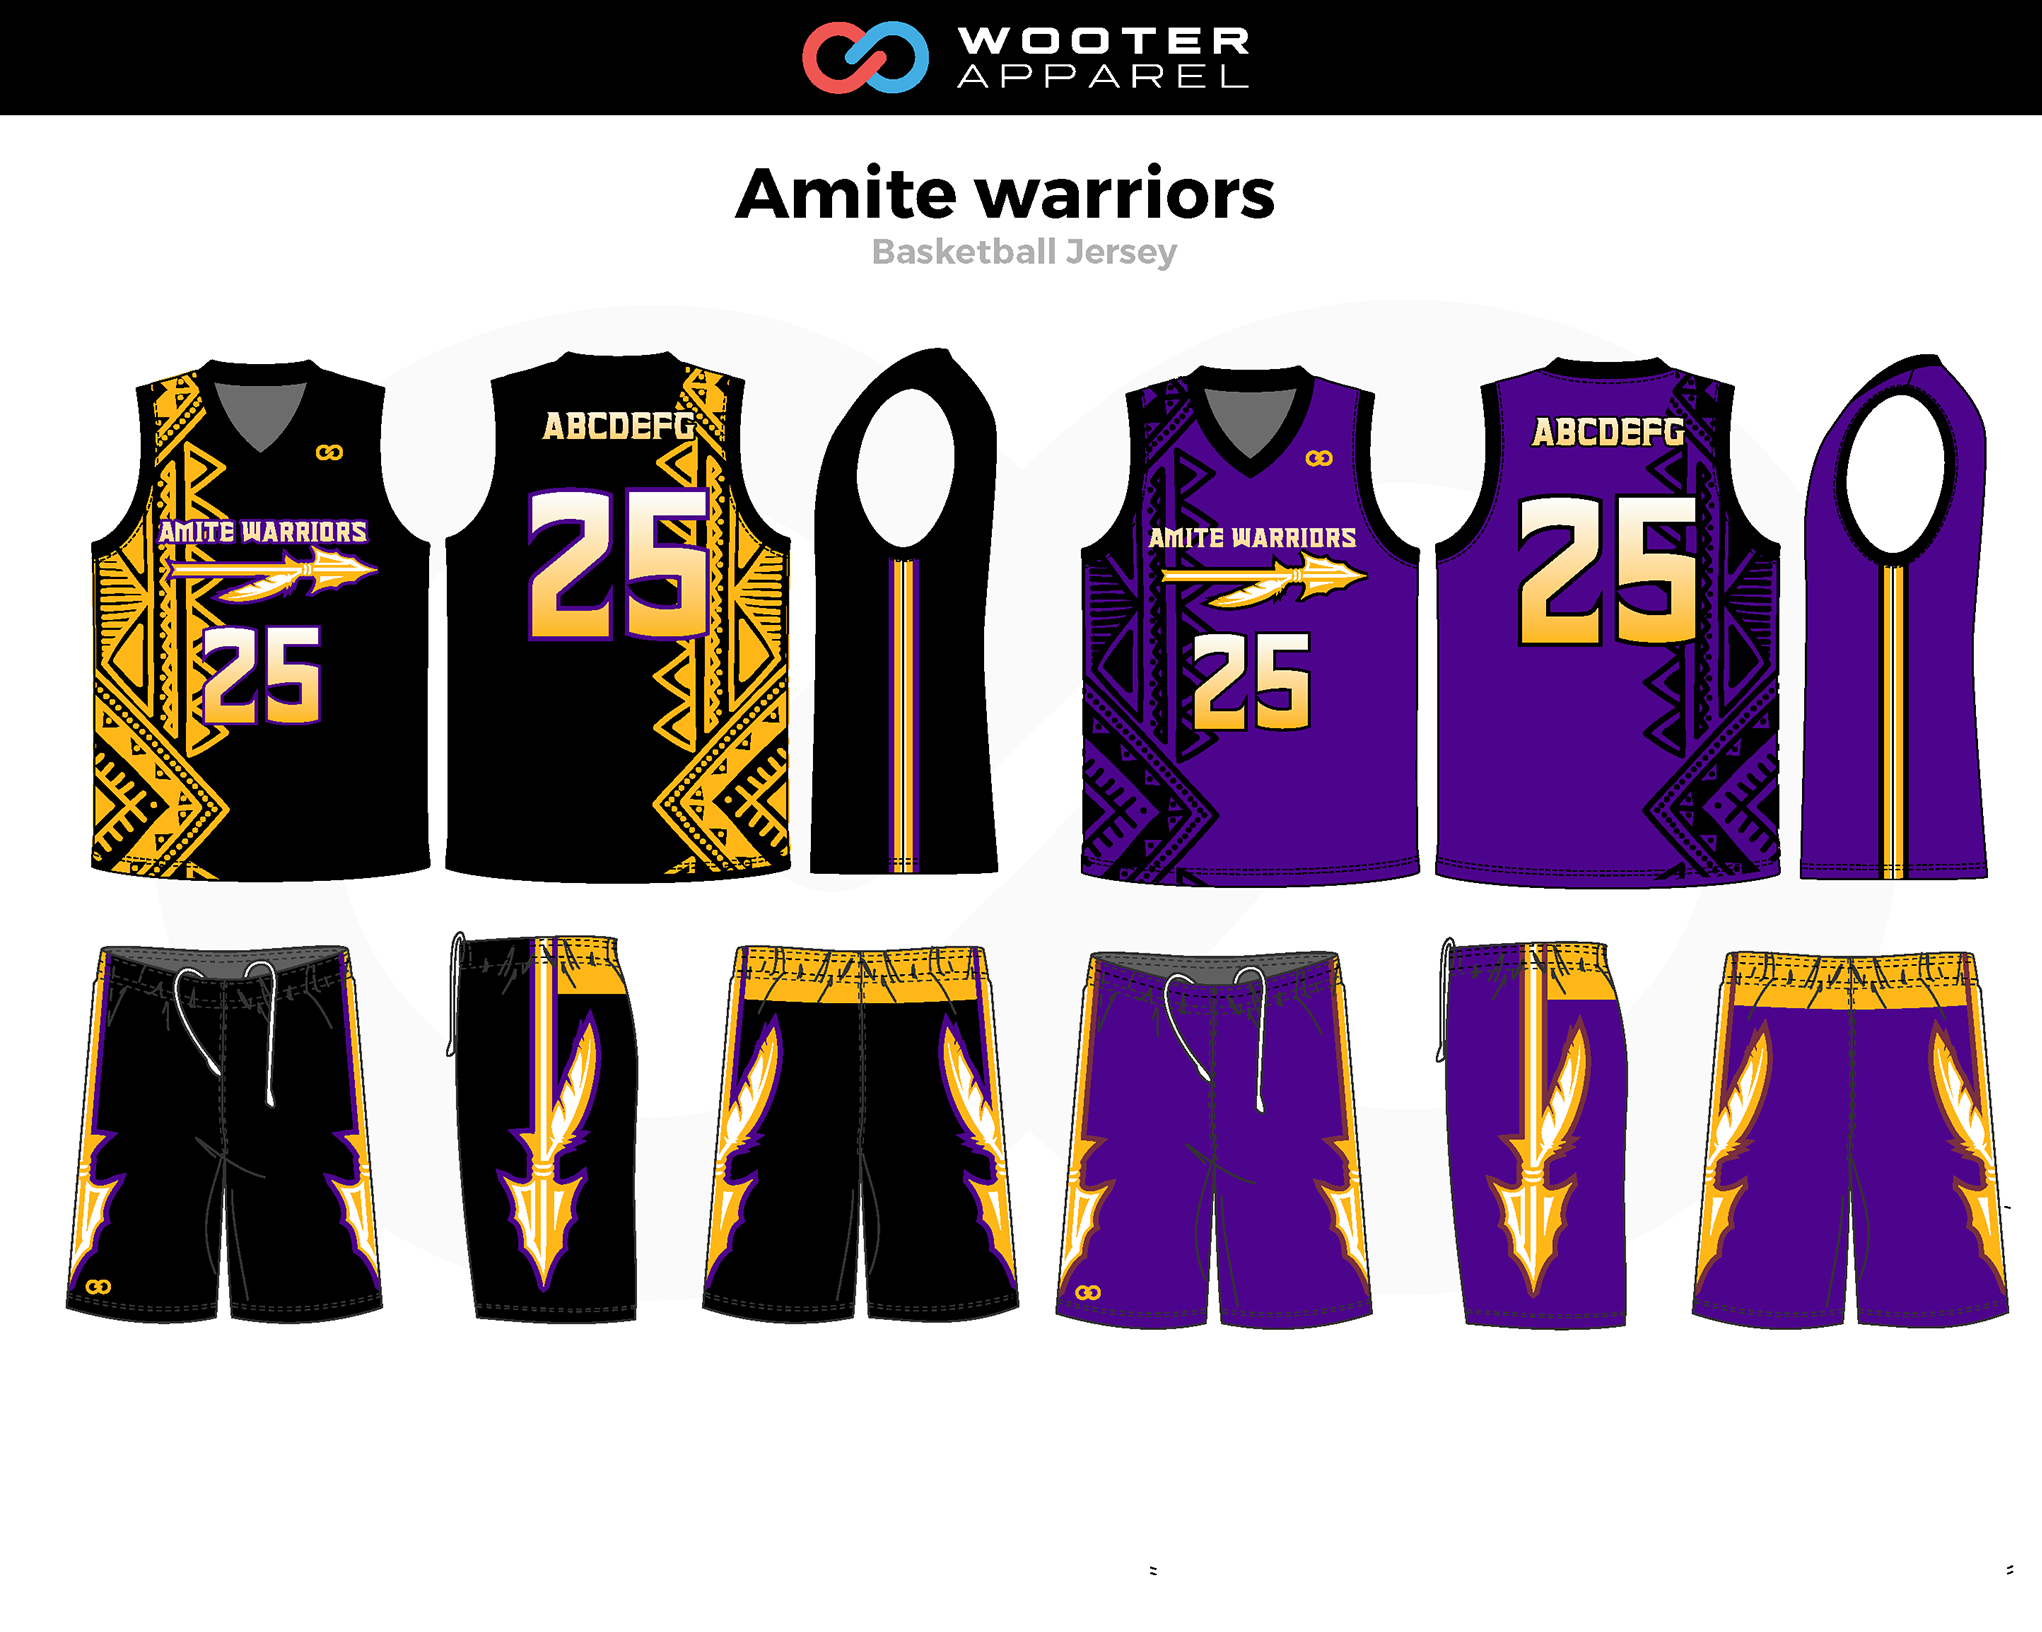 AMITE WARRIORS Black Yellow Lavender Basketball Uniform, Jersey and Shorts